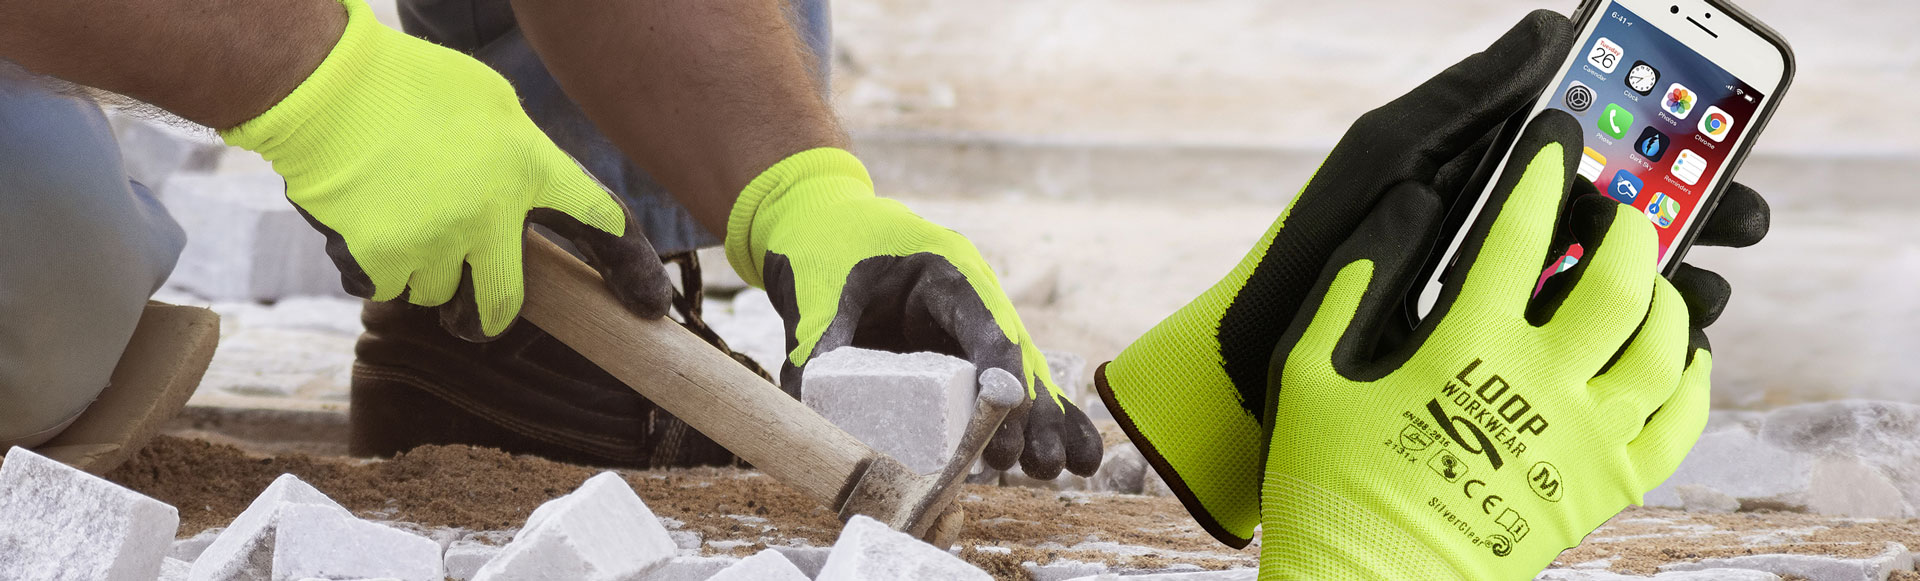 Touchscreen Work Gloves - Hi-Vis Safety gloves work with your iPhone. Part of Antiviral PPE range